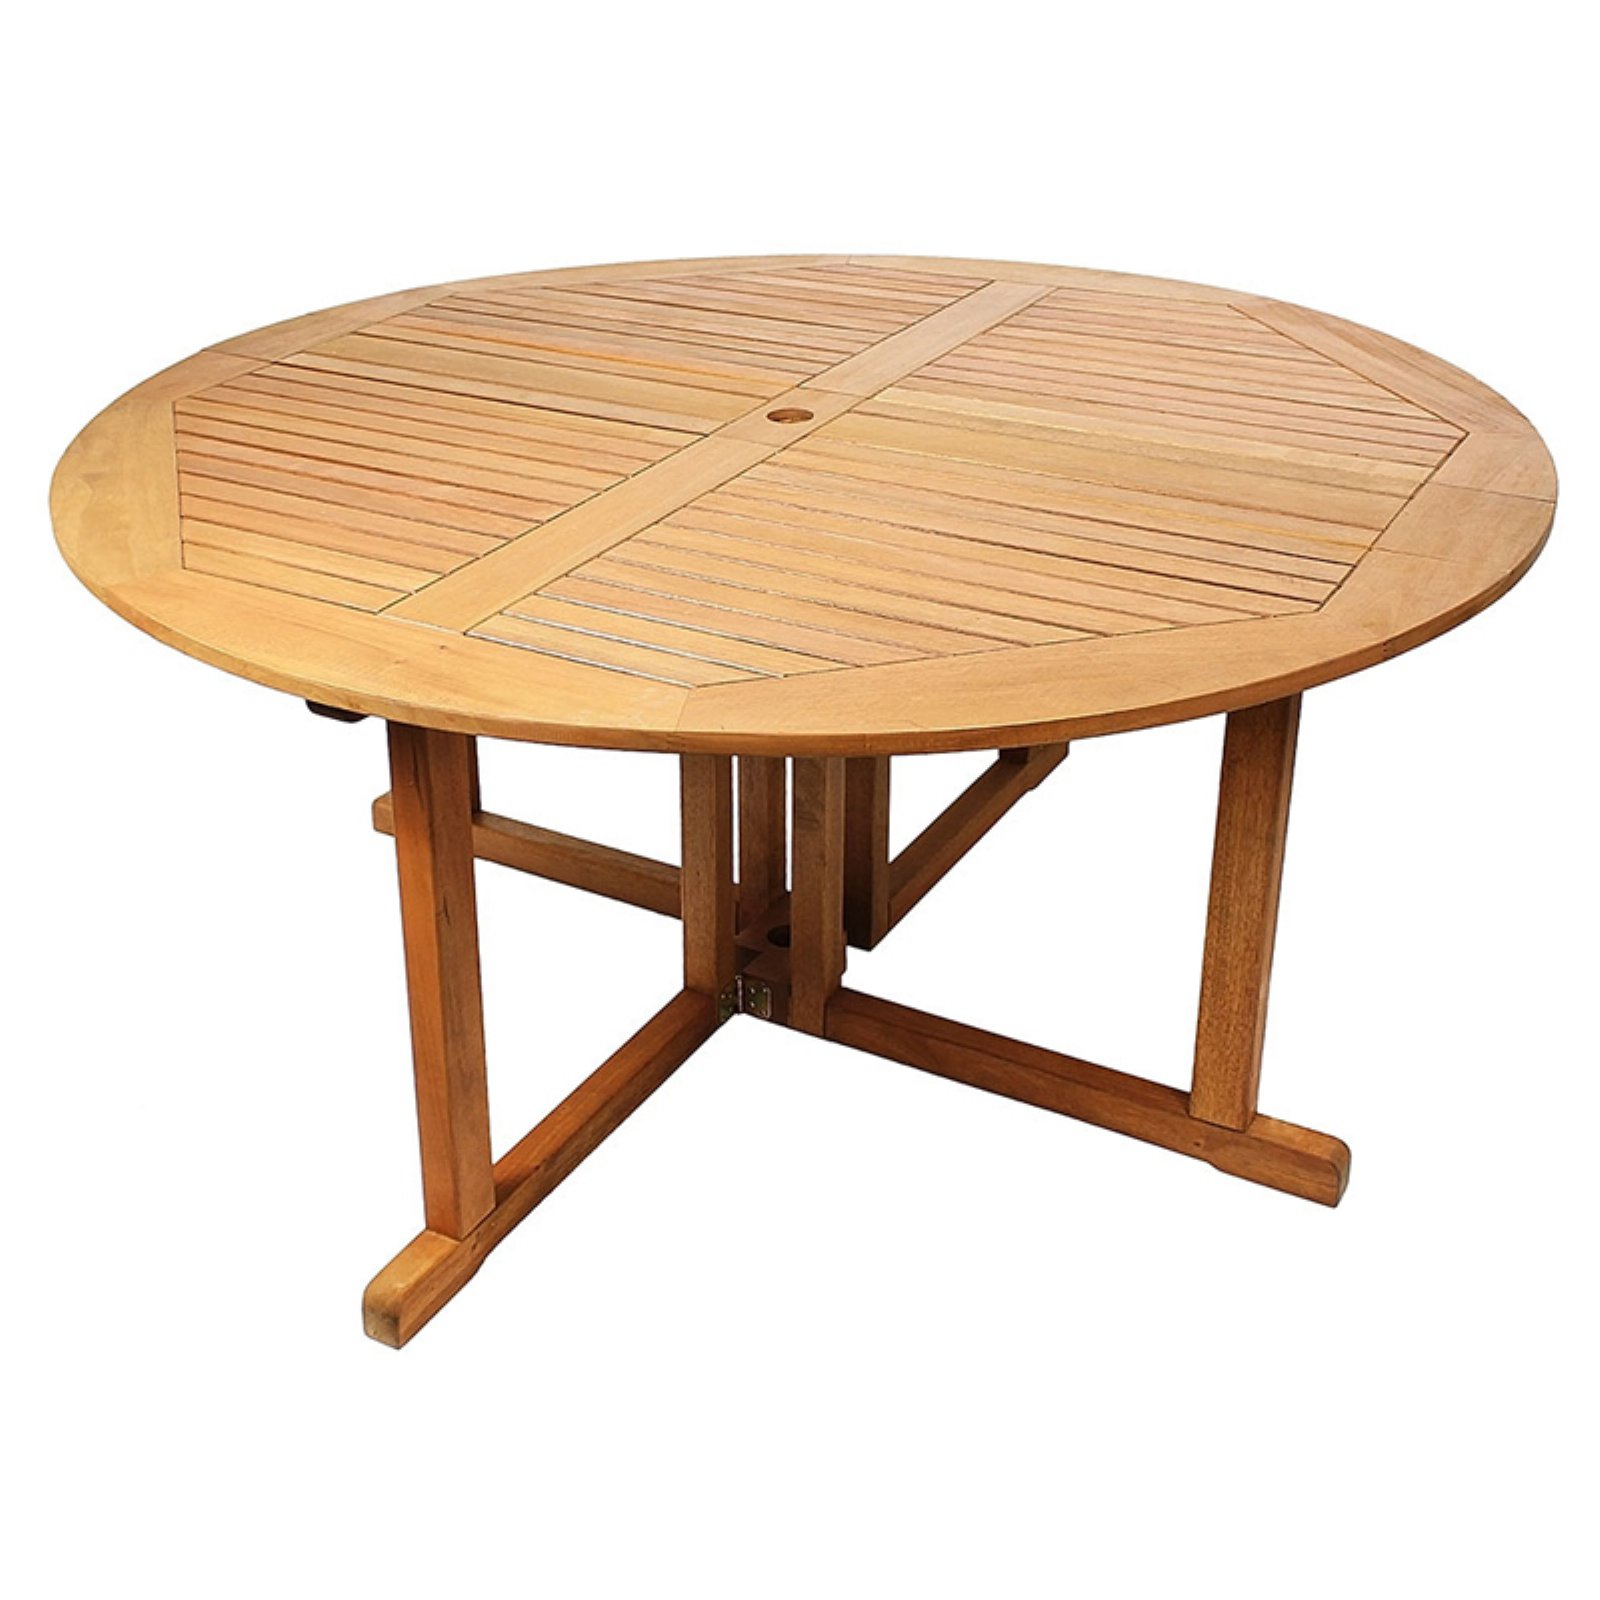 Achla Designs Round Folding Dining Table by Minuteman International